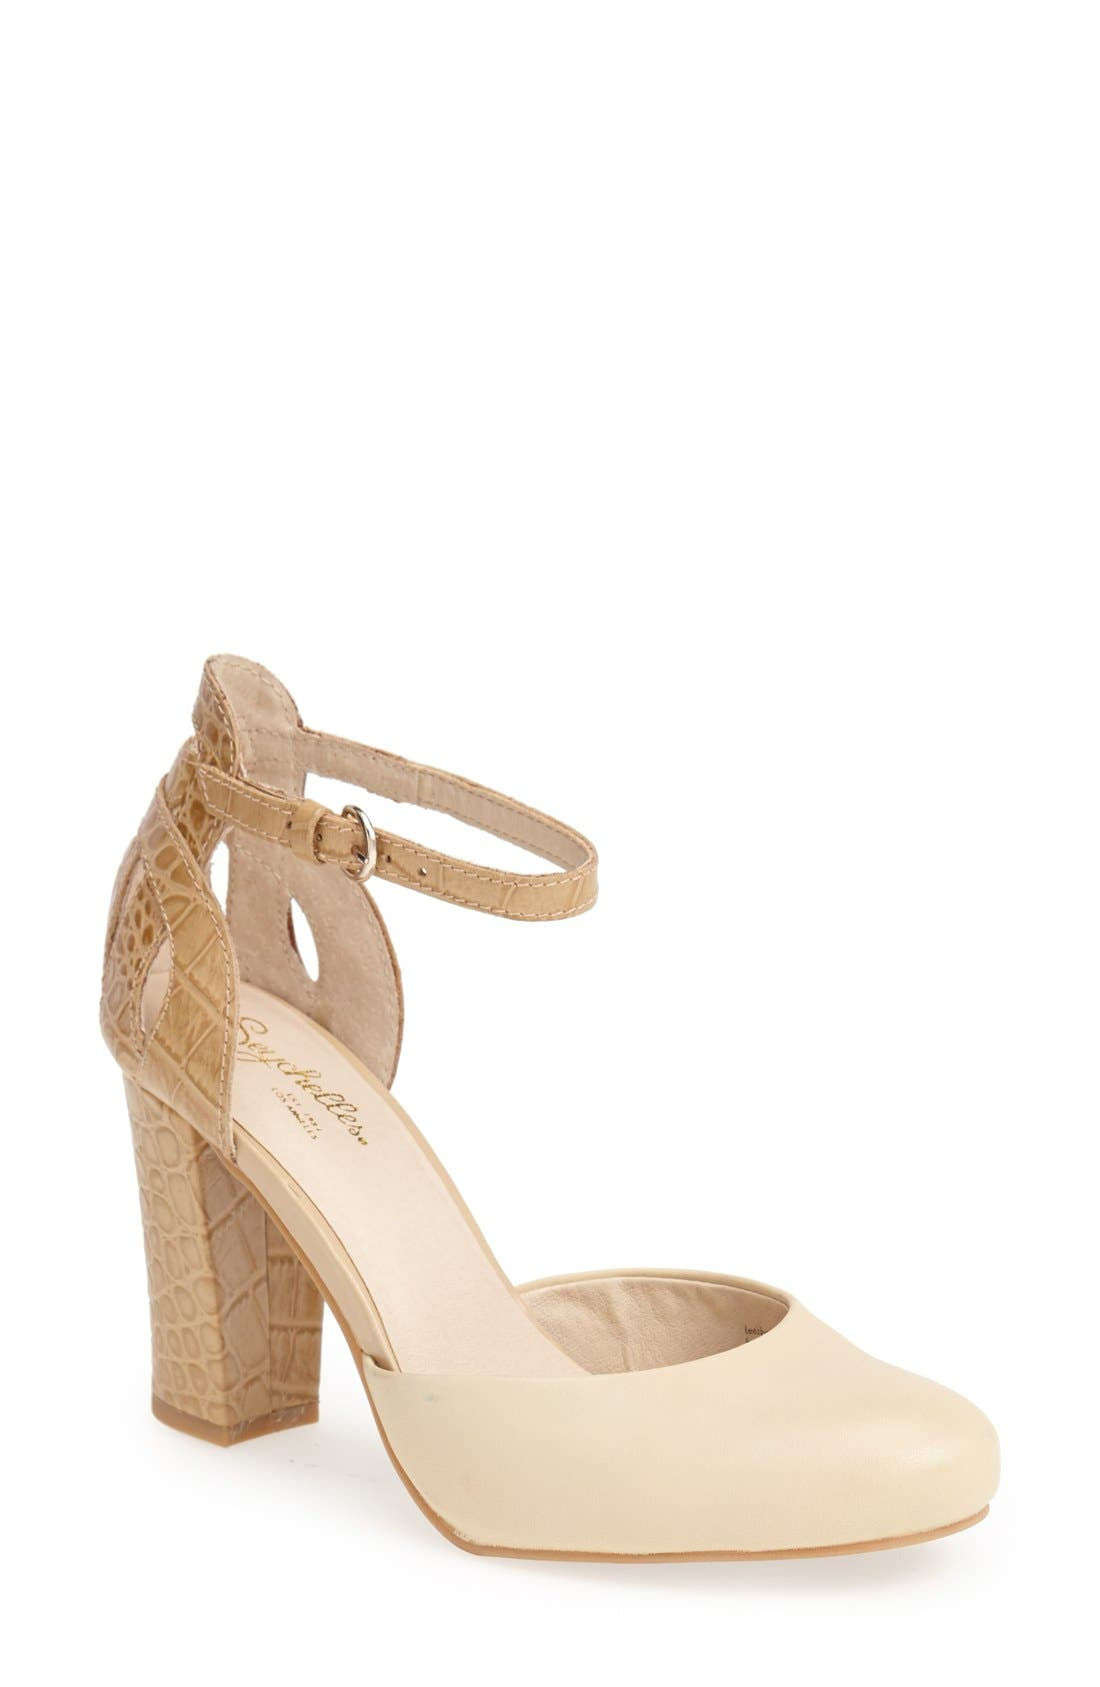 Main Image - Seychelles 'Conquer' Ankle Strap d'Orsay Pump (Women)